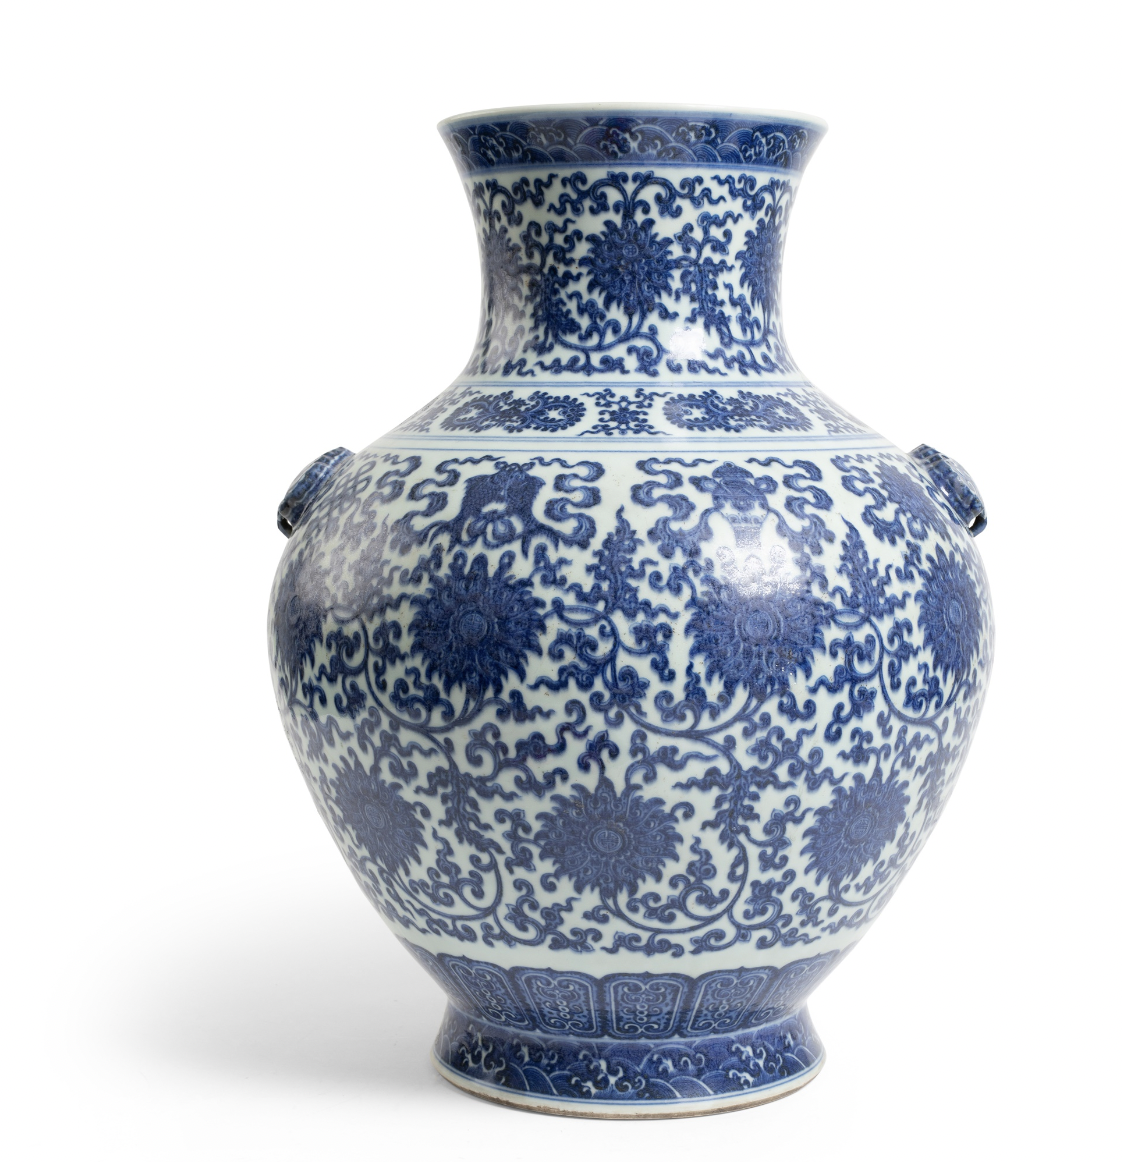 LARGE BLUE AND WHITE 'LOTUS' VASE QIANLONG MARK, 18TH CENTURY